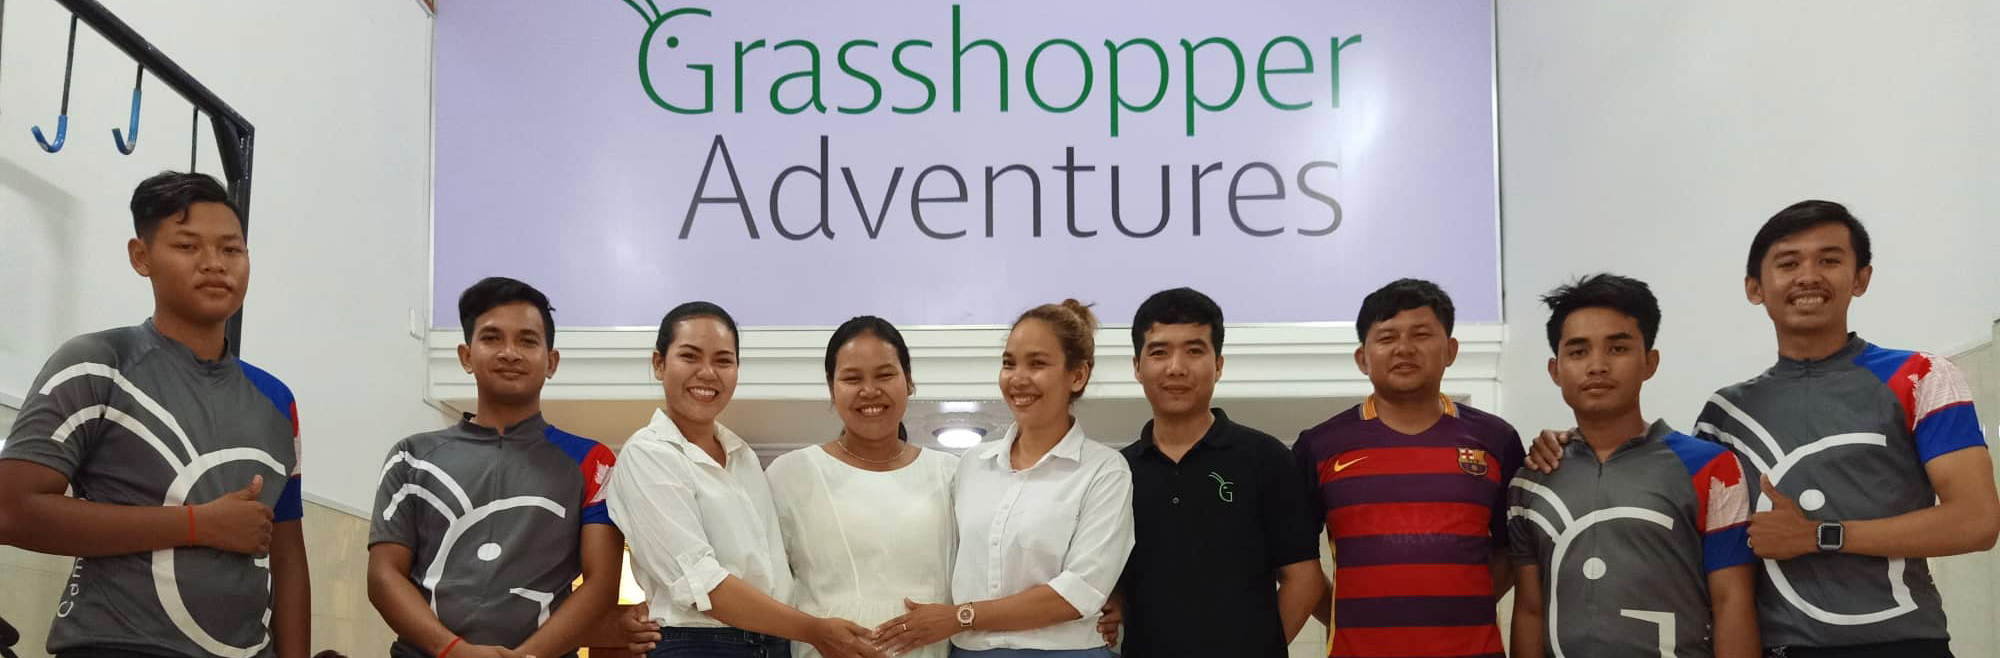 Grasshopper Adventures day-bike-tours-in-phnom-penh Team